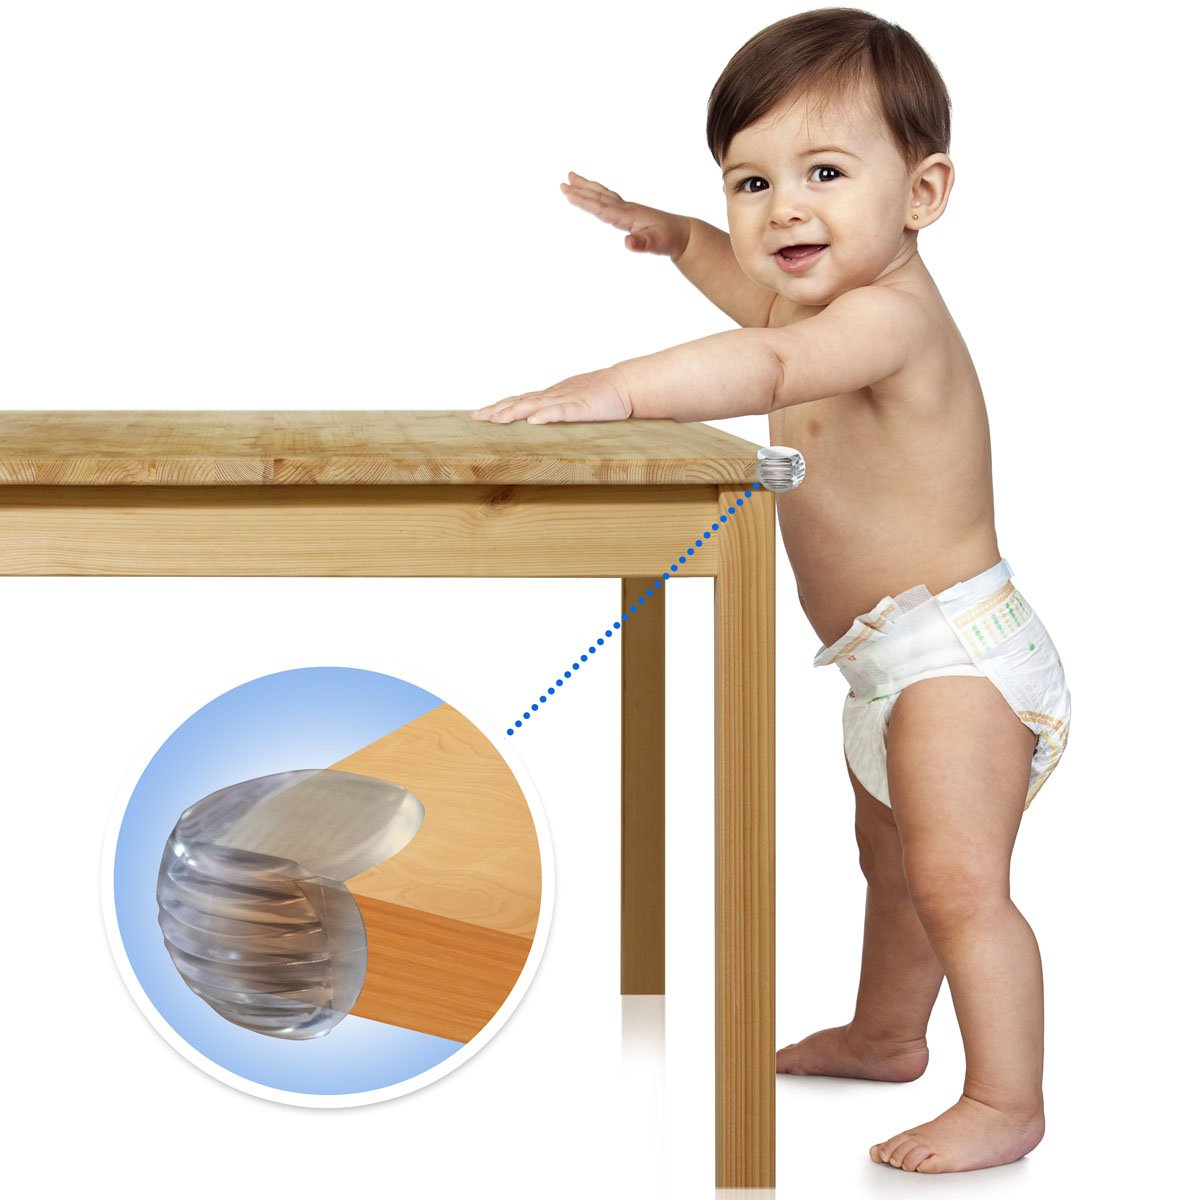 A baby leaning on a table fitted with furniture babyproof corner safety protector, Best Furniture Corner Protectors